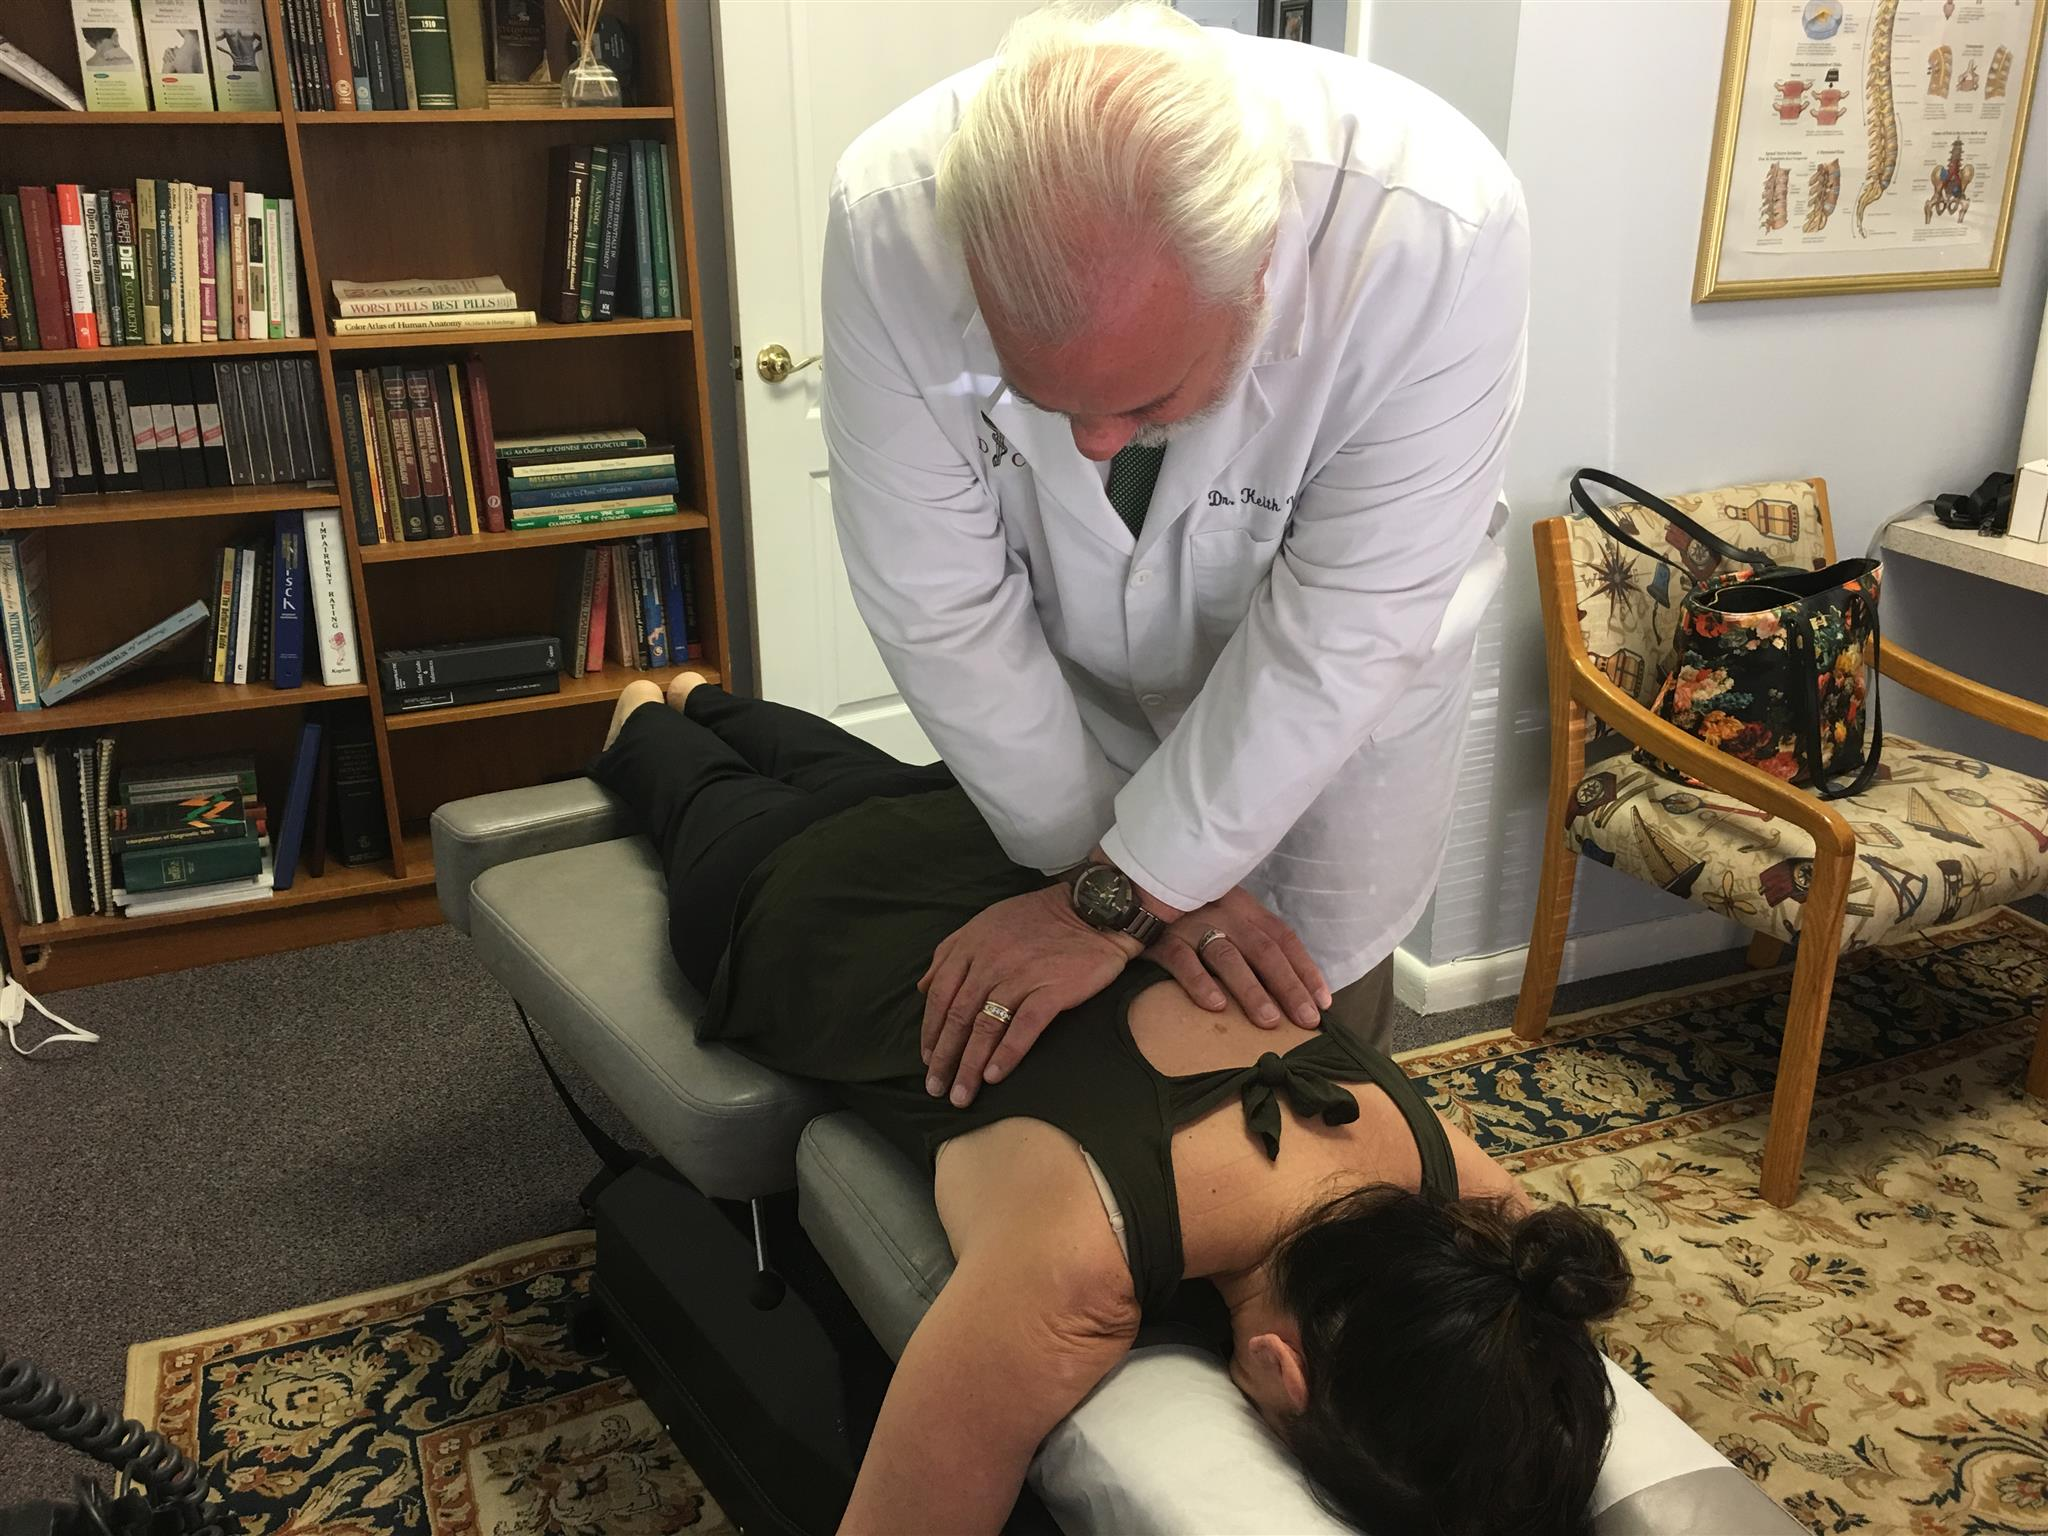 Dr. Keith Volstad performing a chiropractic adjustment at Volstad Chiropractic a Jupiter Florida 33458 chiropractor